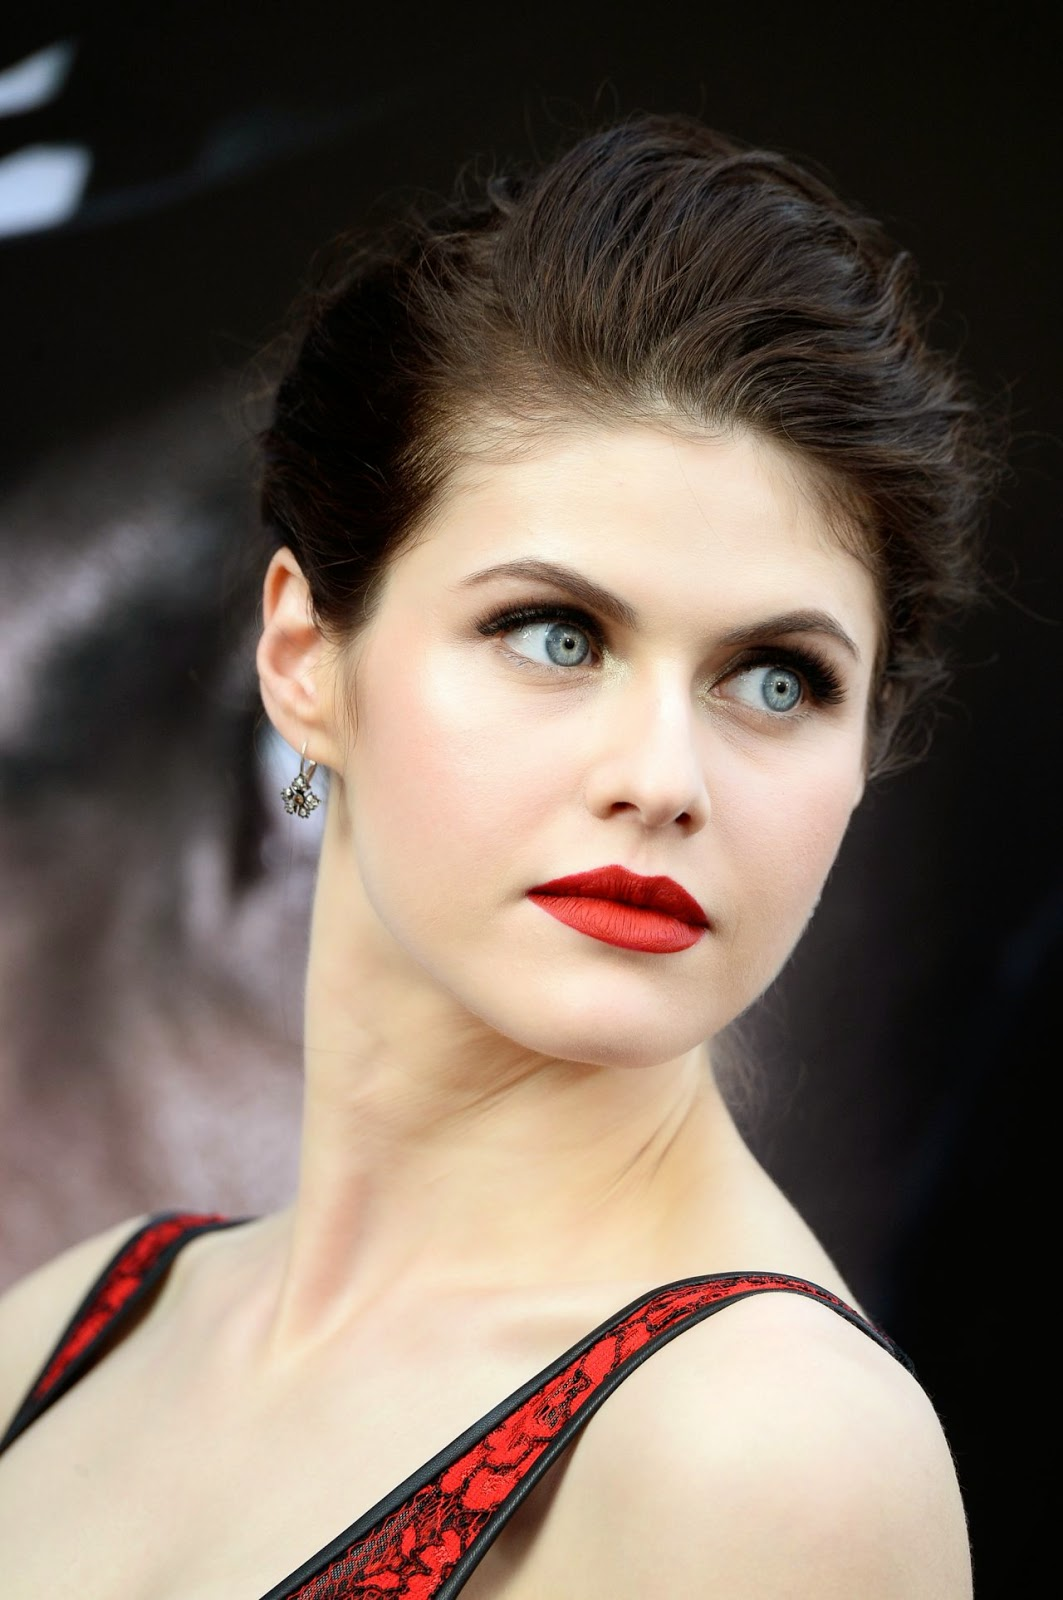 Arts Cross Stitch Model Actress Alexandra Daddario